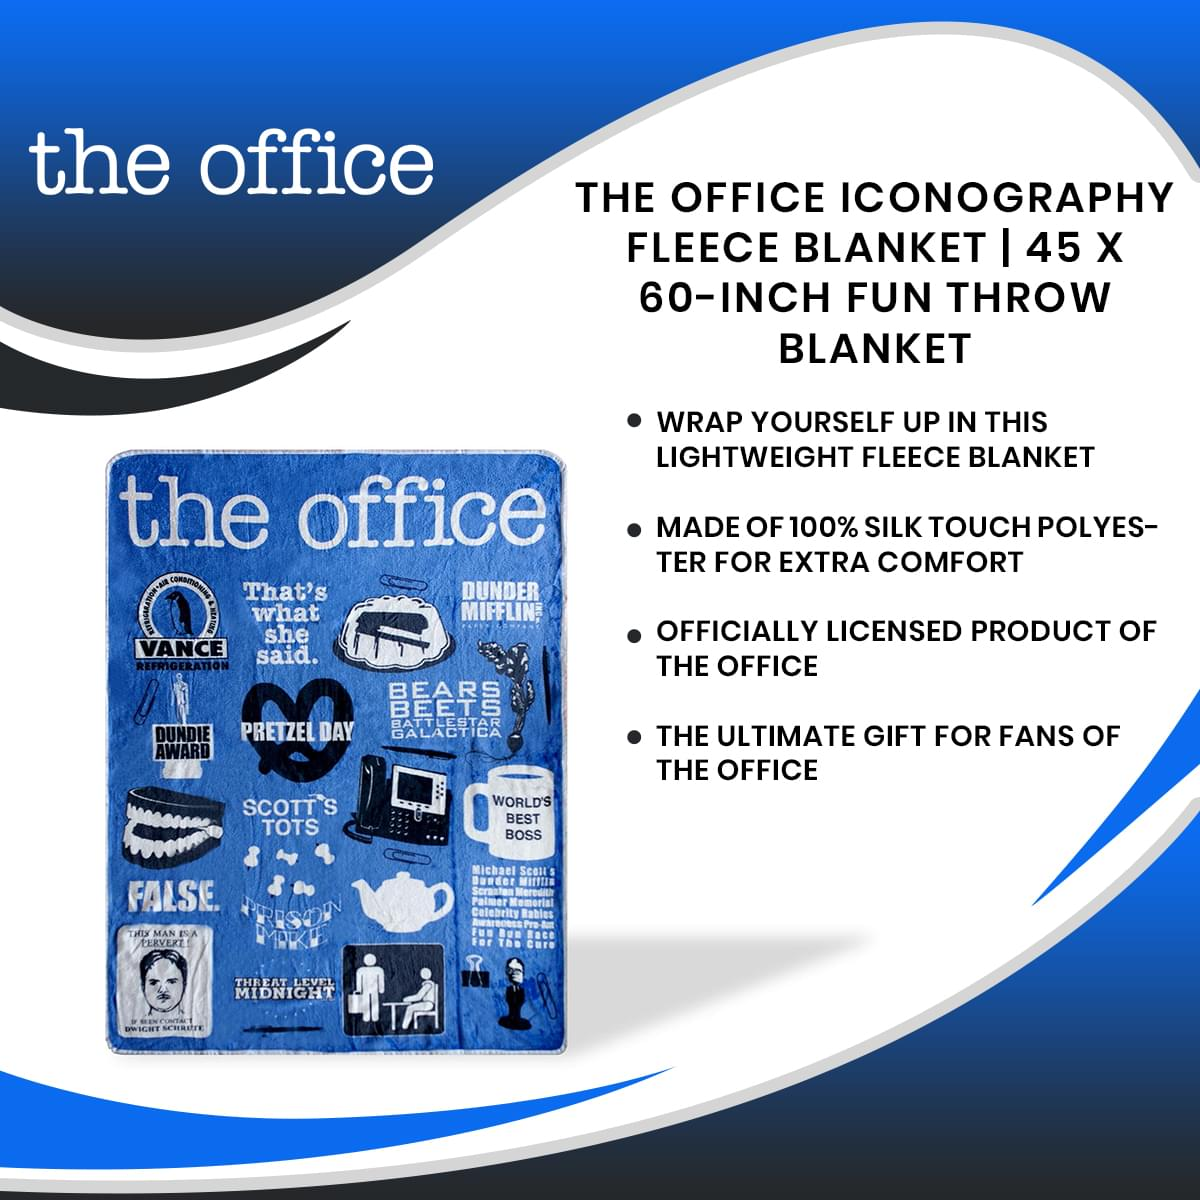 The Office Iconography Fleece Blanket | 45 x 60-Inch Fun Throw Blanket